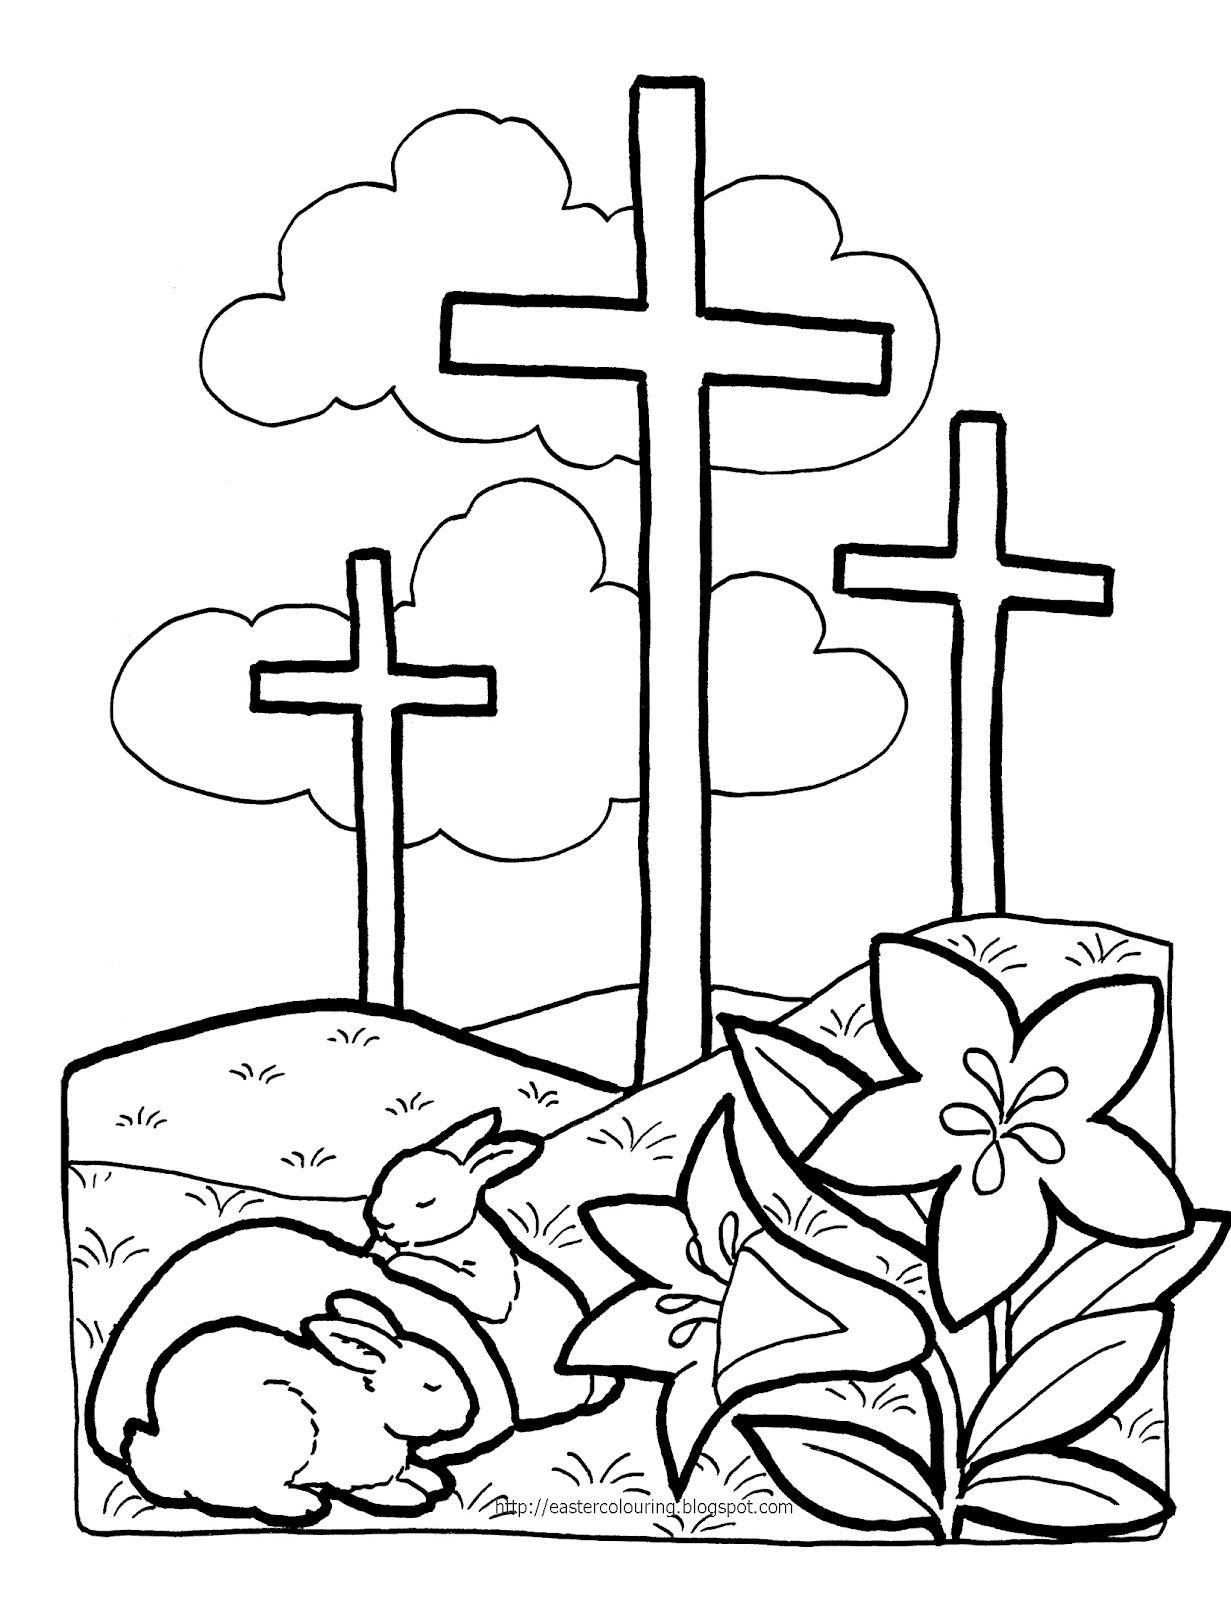 Free Letters From The Easter Bunny And Coloring Pages In Pdf Format Description